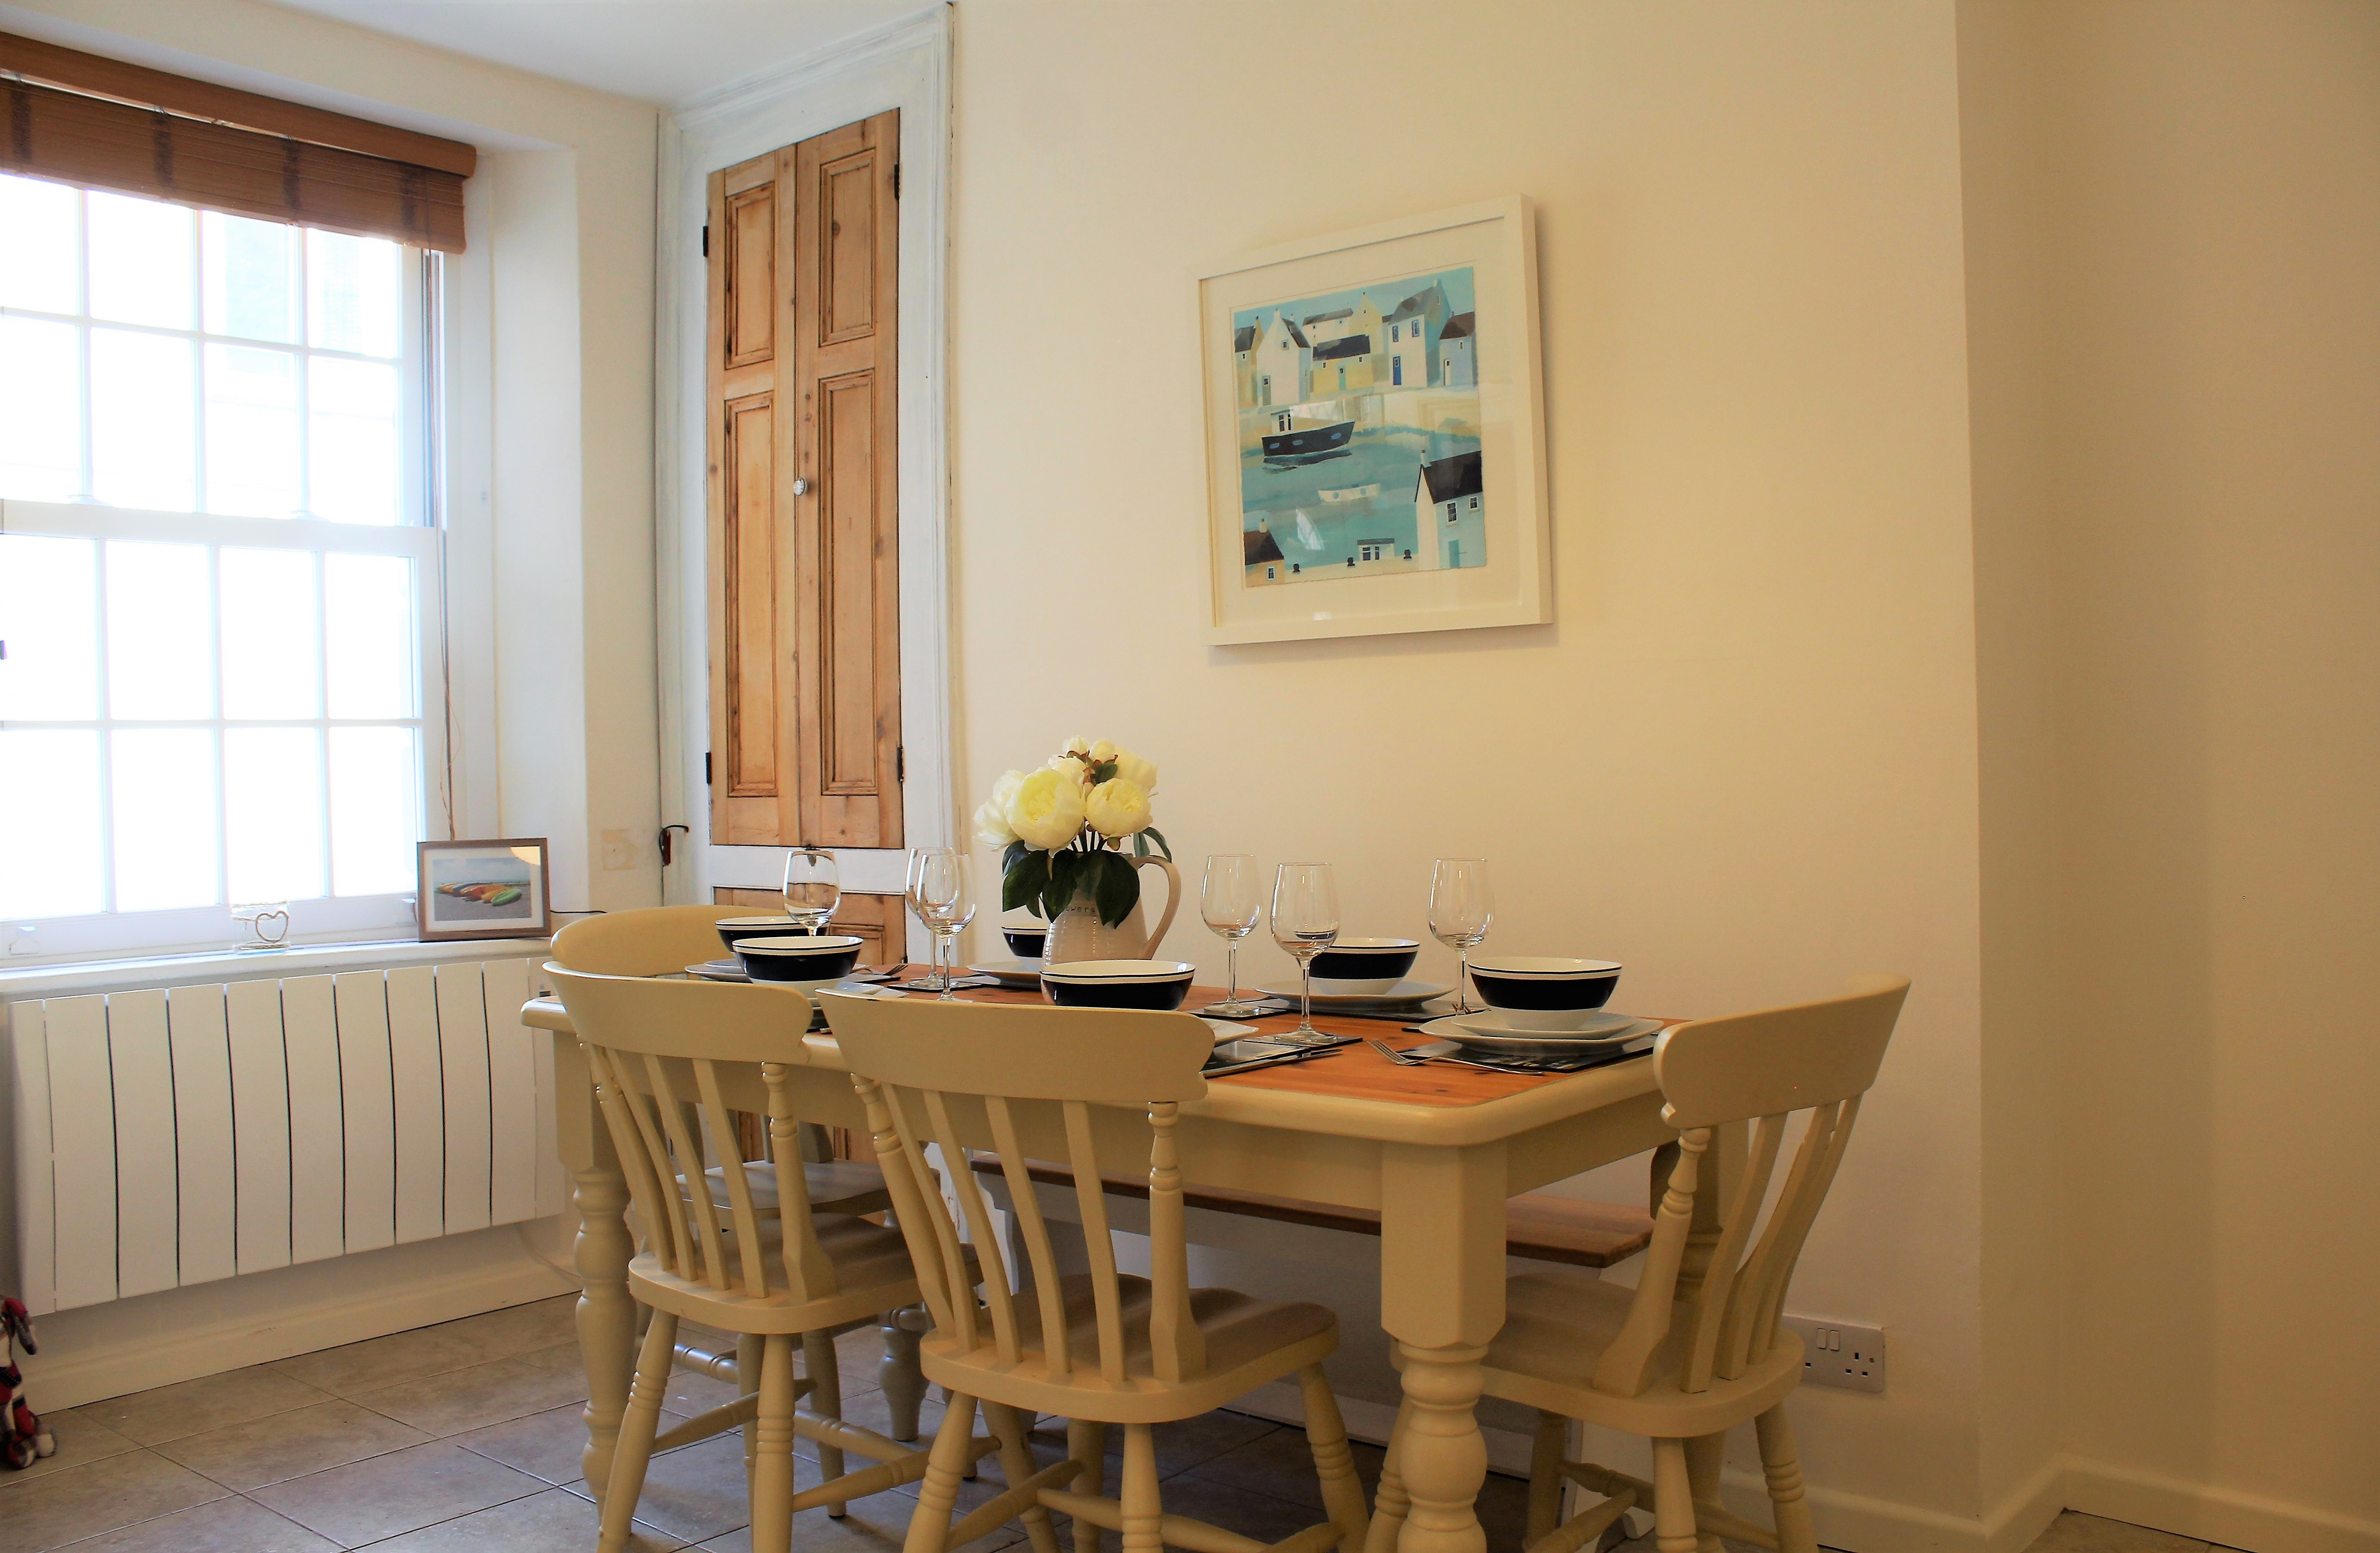 Dining room with seating for up to 6 people